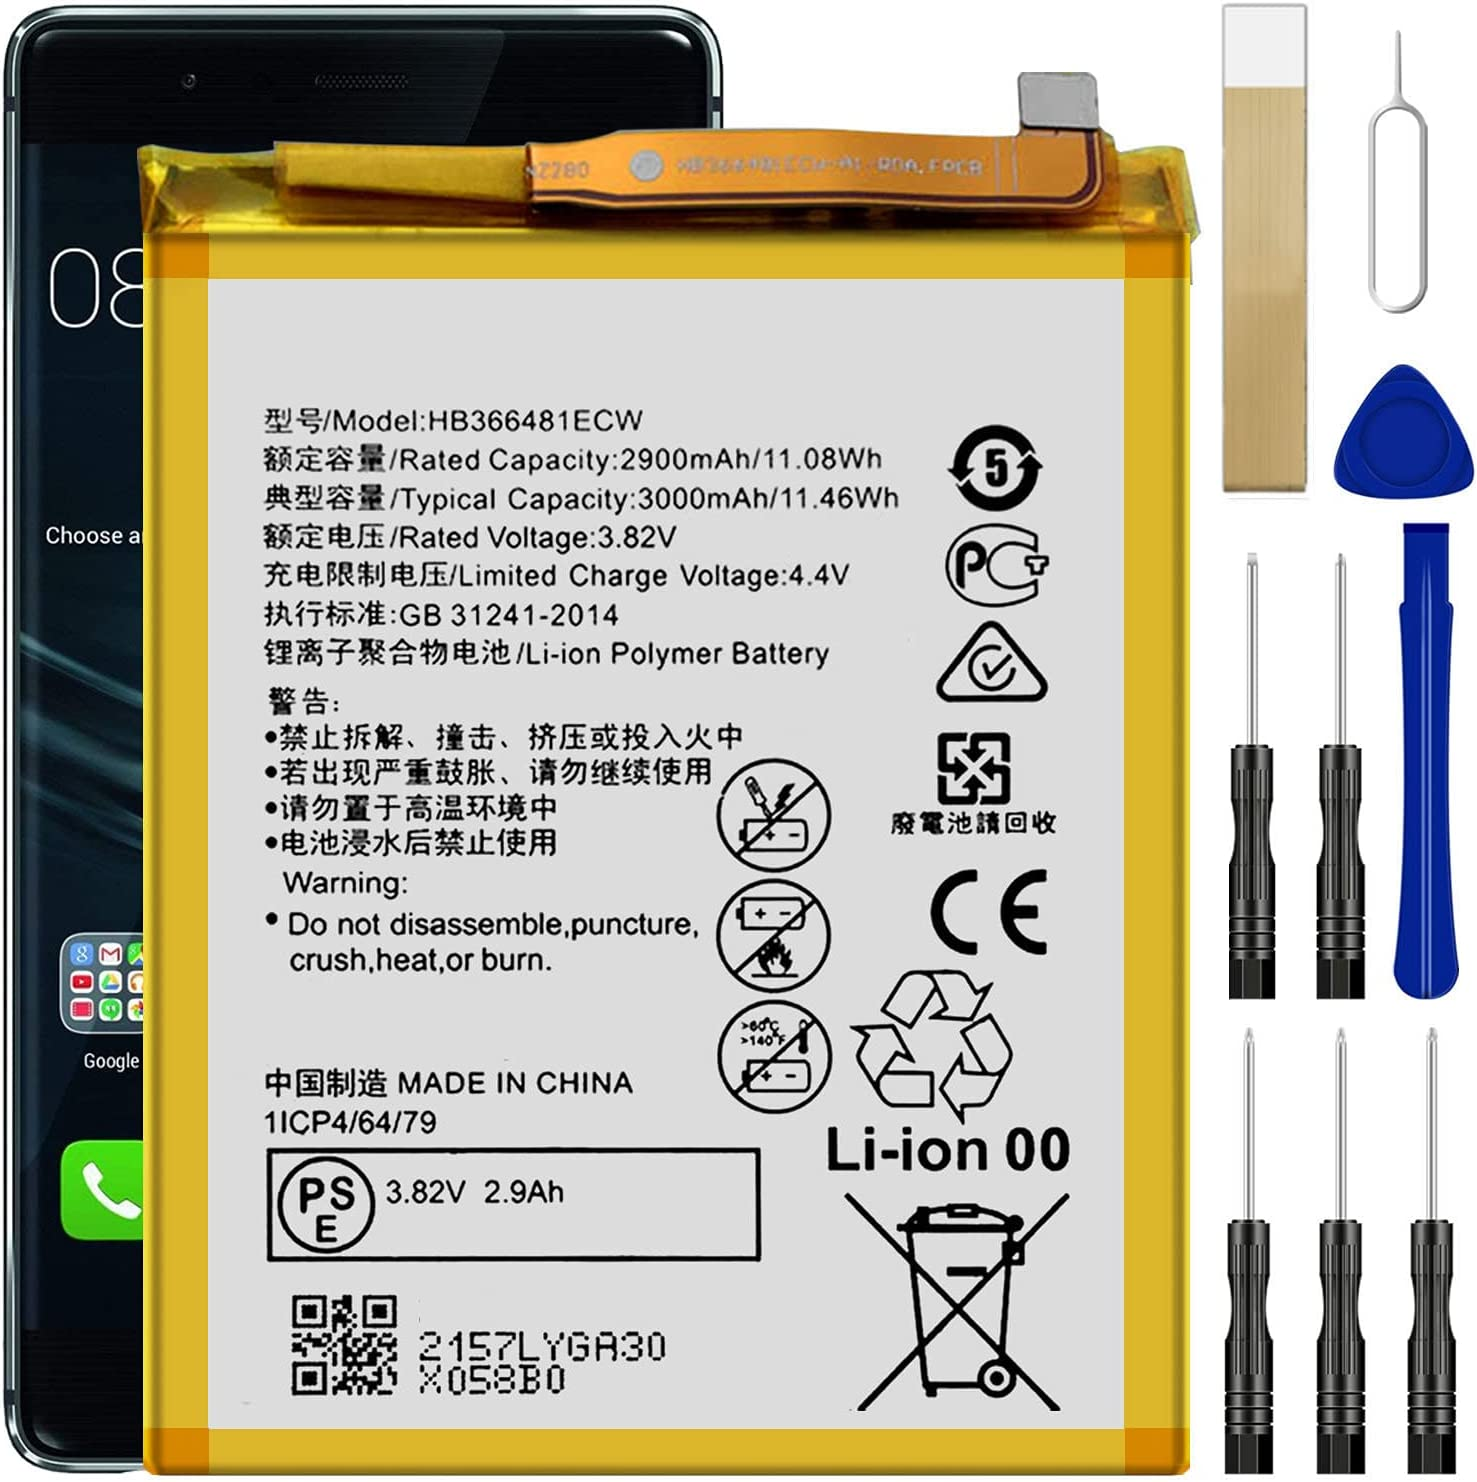 for Huawei Nova 20E P20 Lite ANE LX20 HB20664820ECW 2020 Replacement Battery with  Tools Adhesive